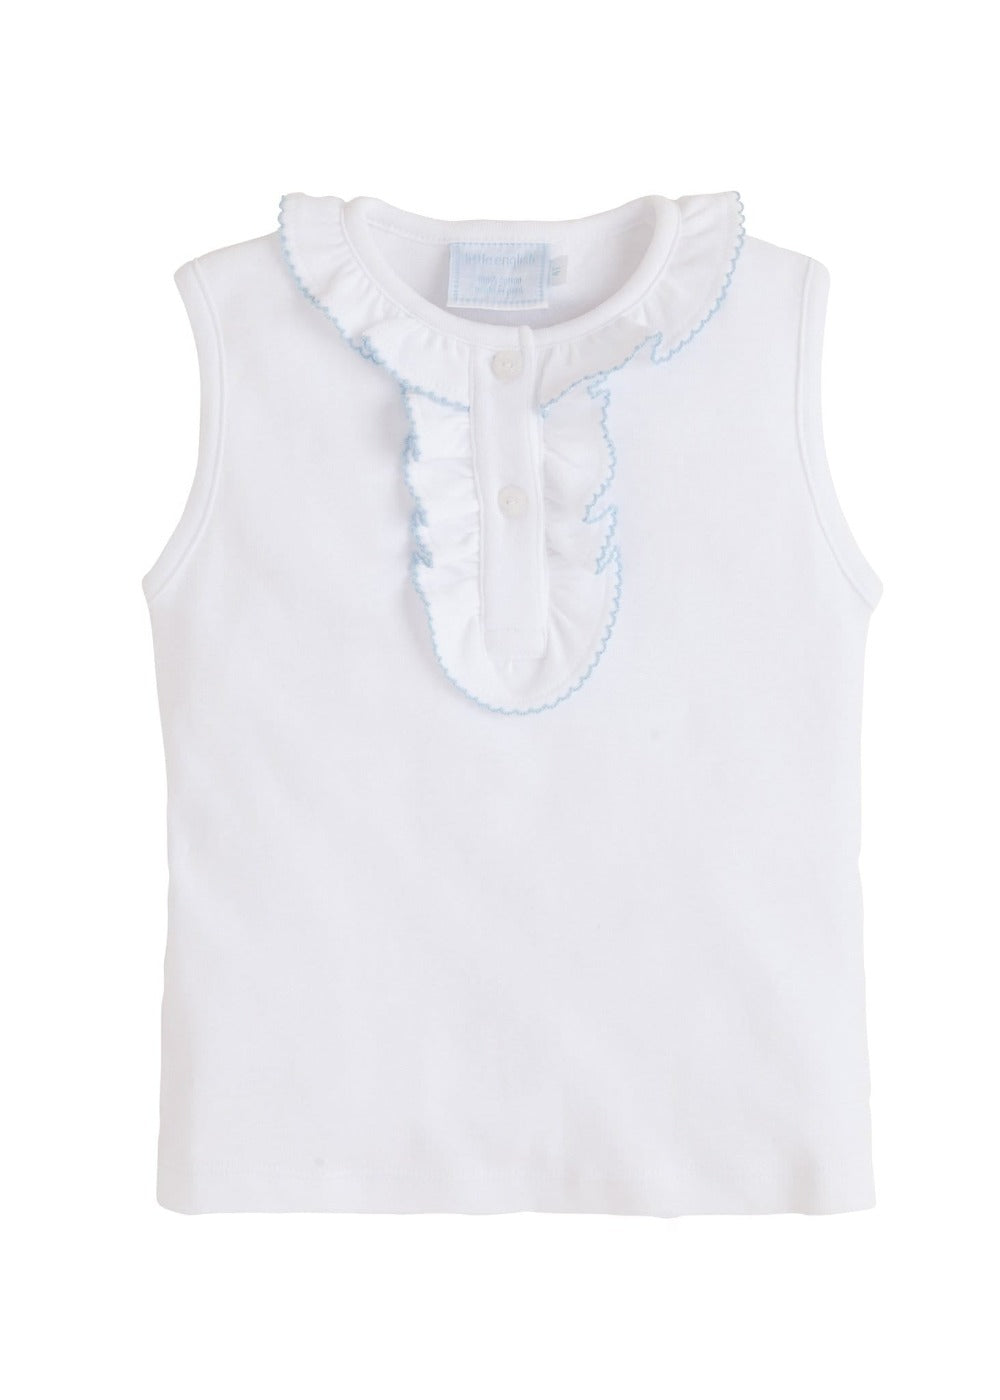 Ruffled Henley - Light Blue, Little English, classic children's clothing, preppy children's clothing, traditional children's clothing, classic baby clothing, traditional baby clothing